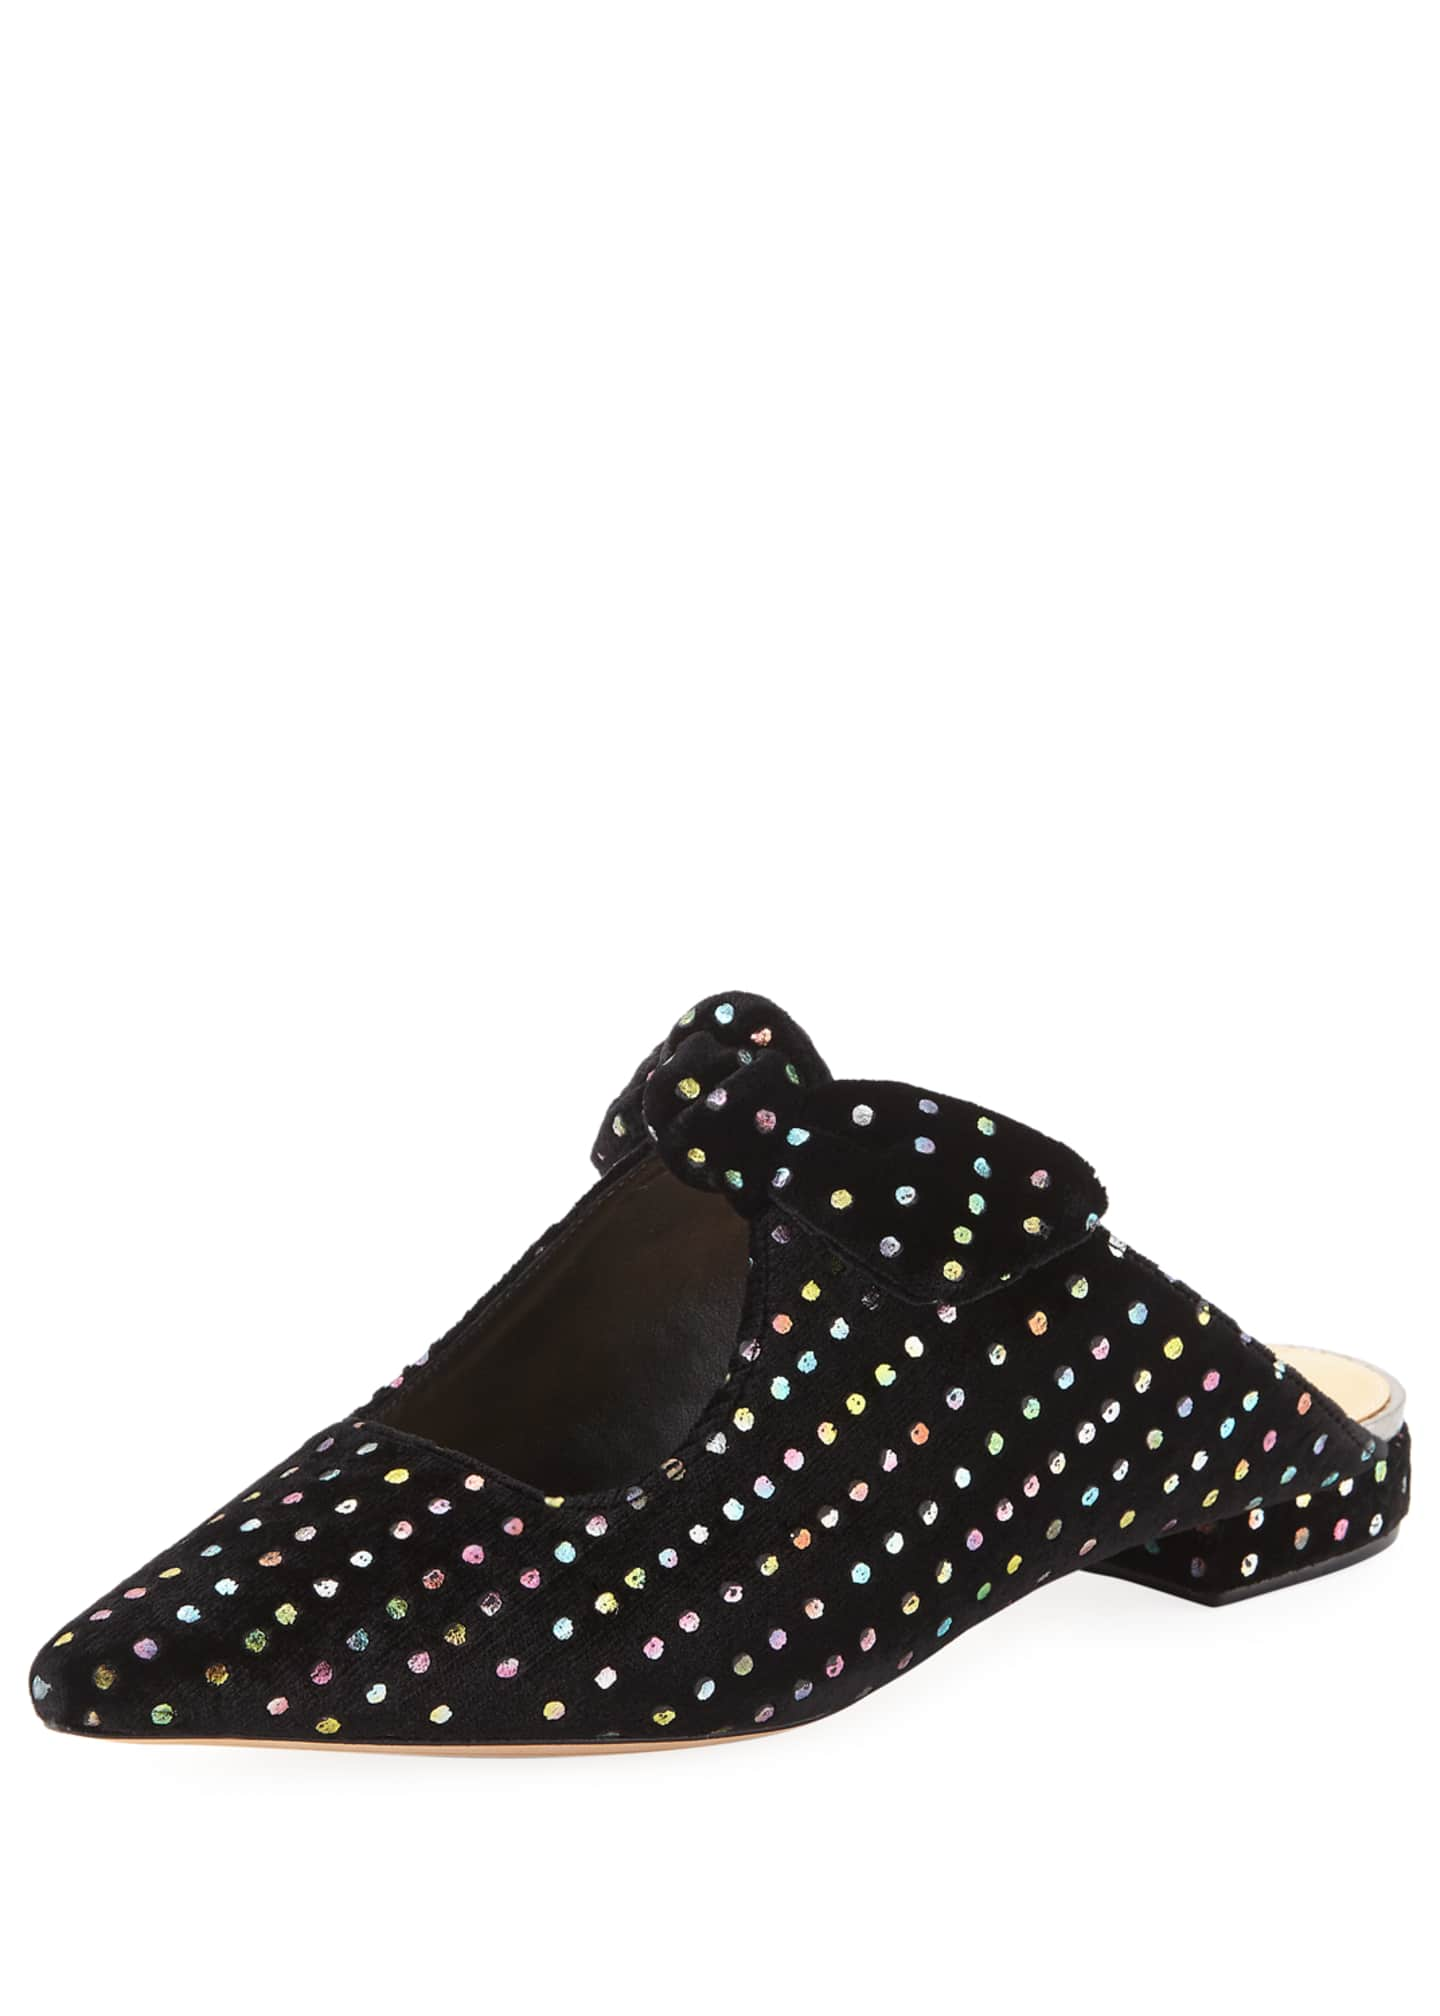 Alexandre Birman Evelyn Embellished Bow Mules